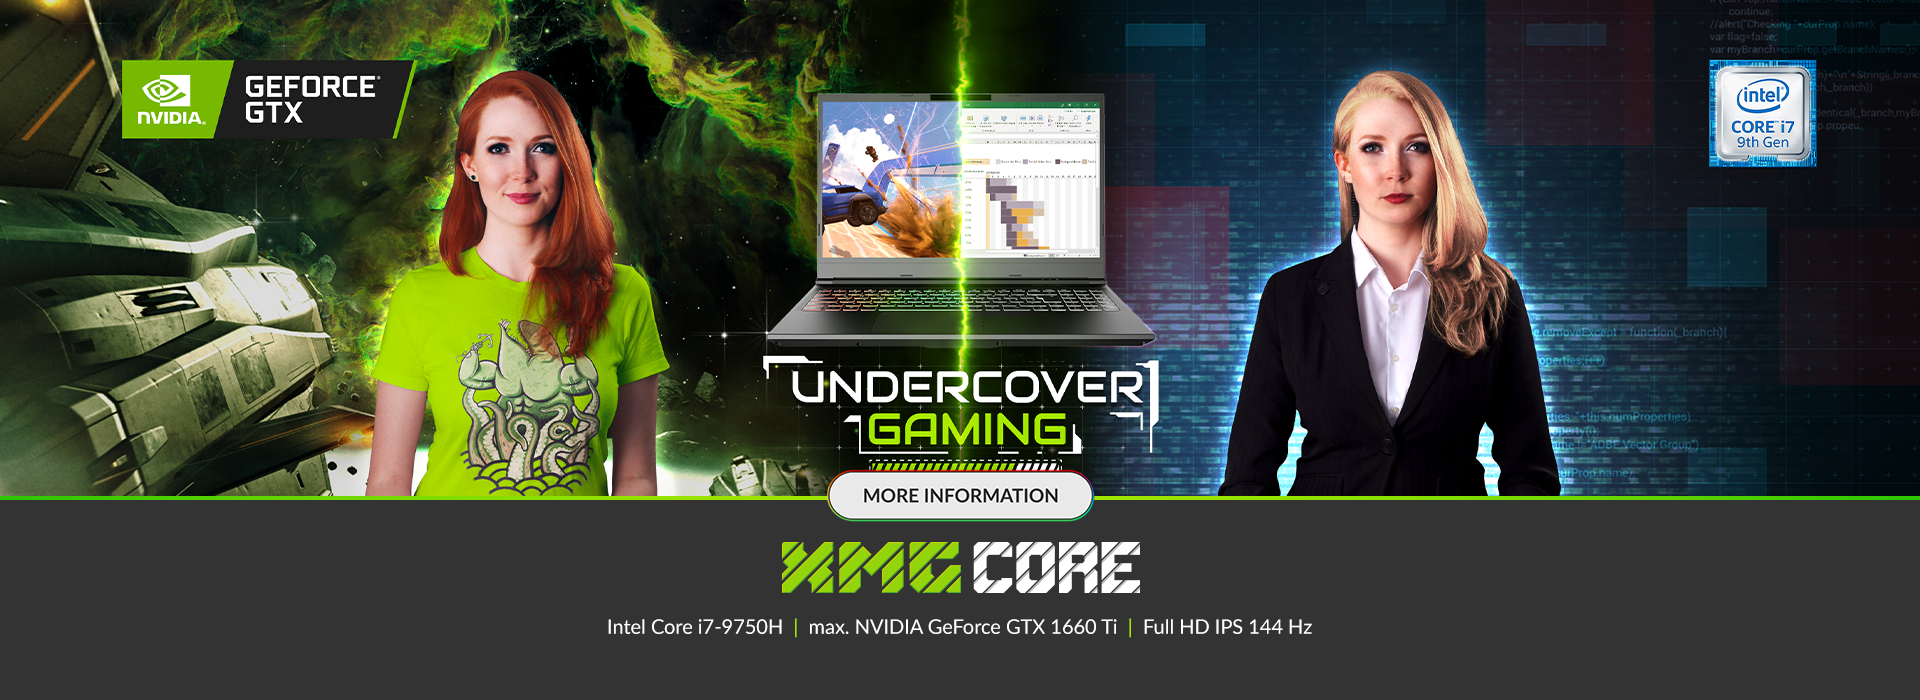 The new XMG CORE series - Undercover Gaming